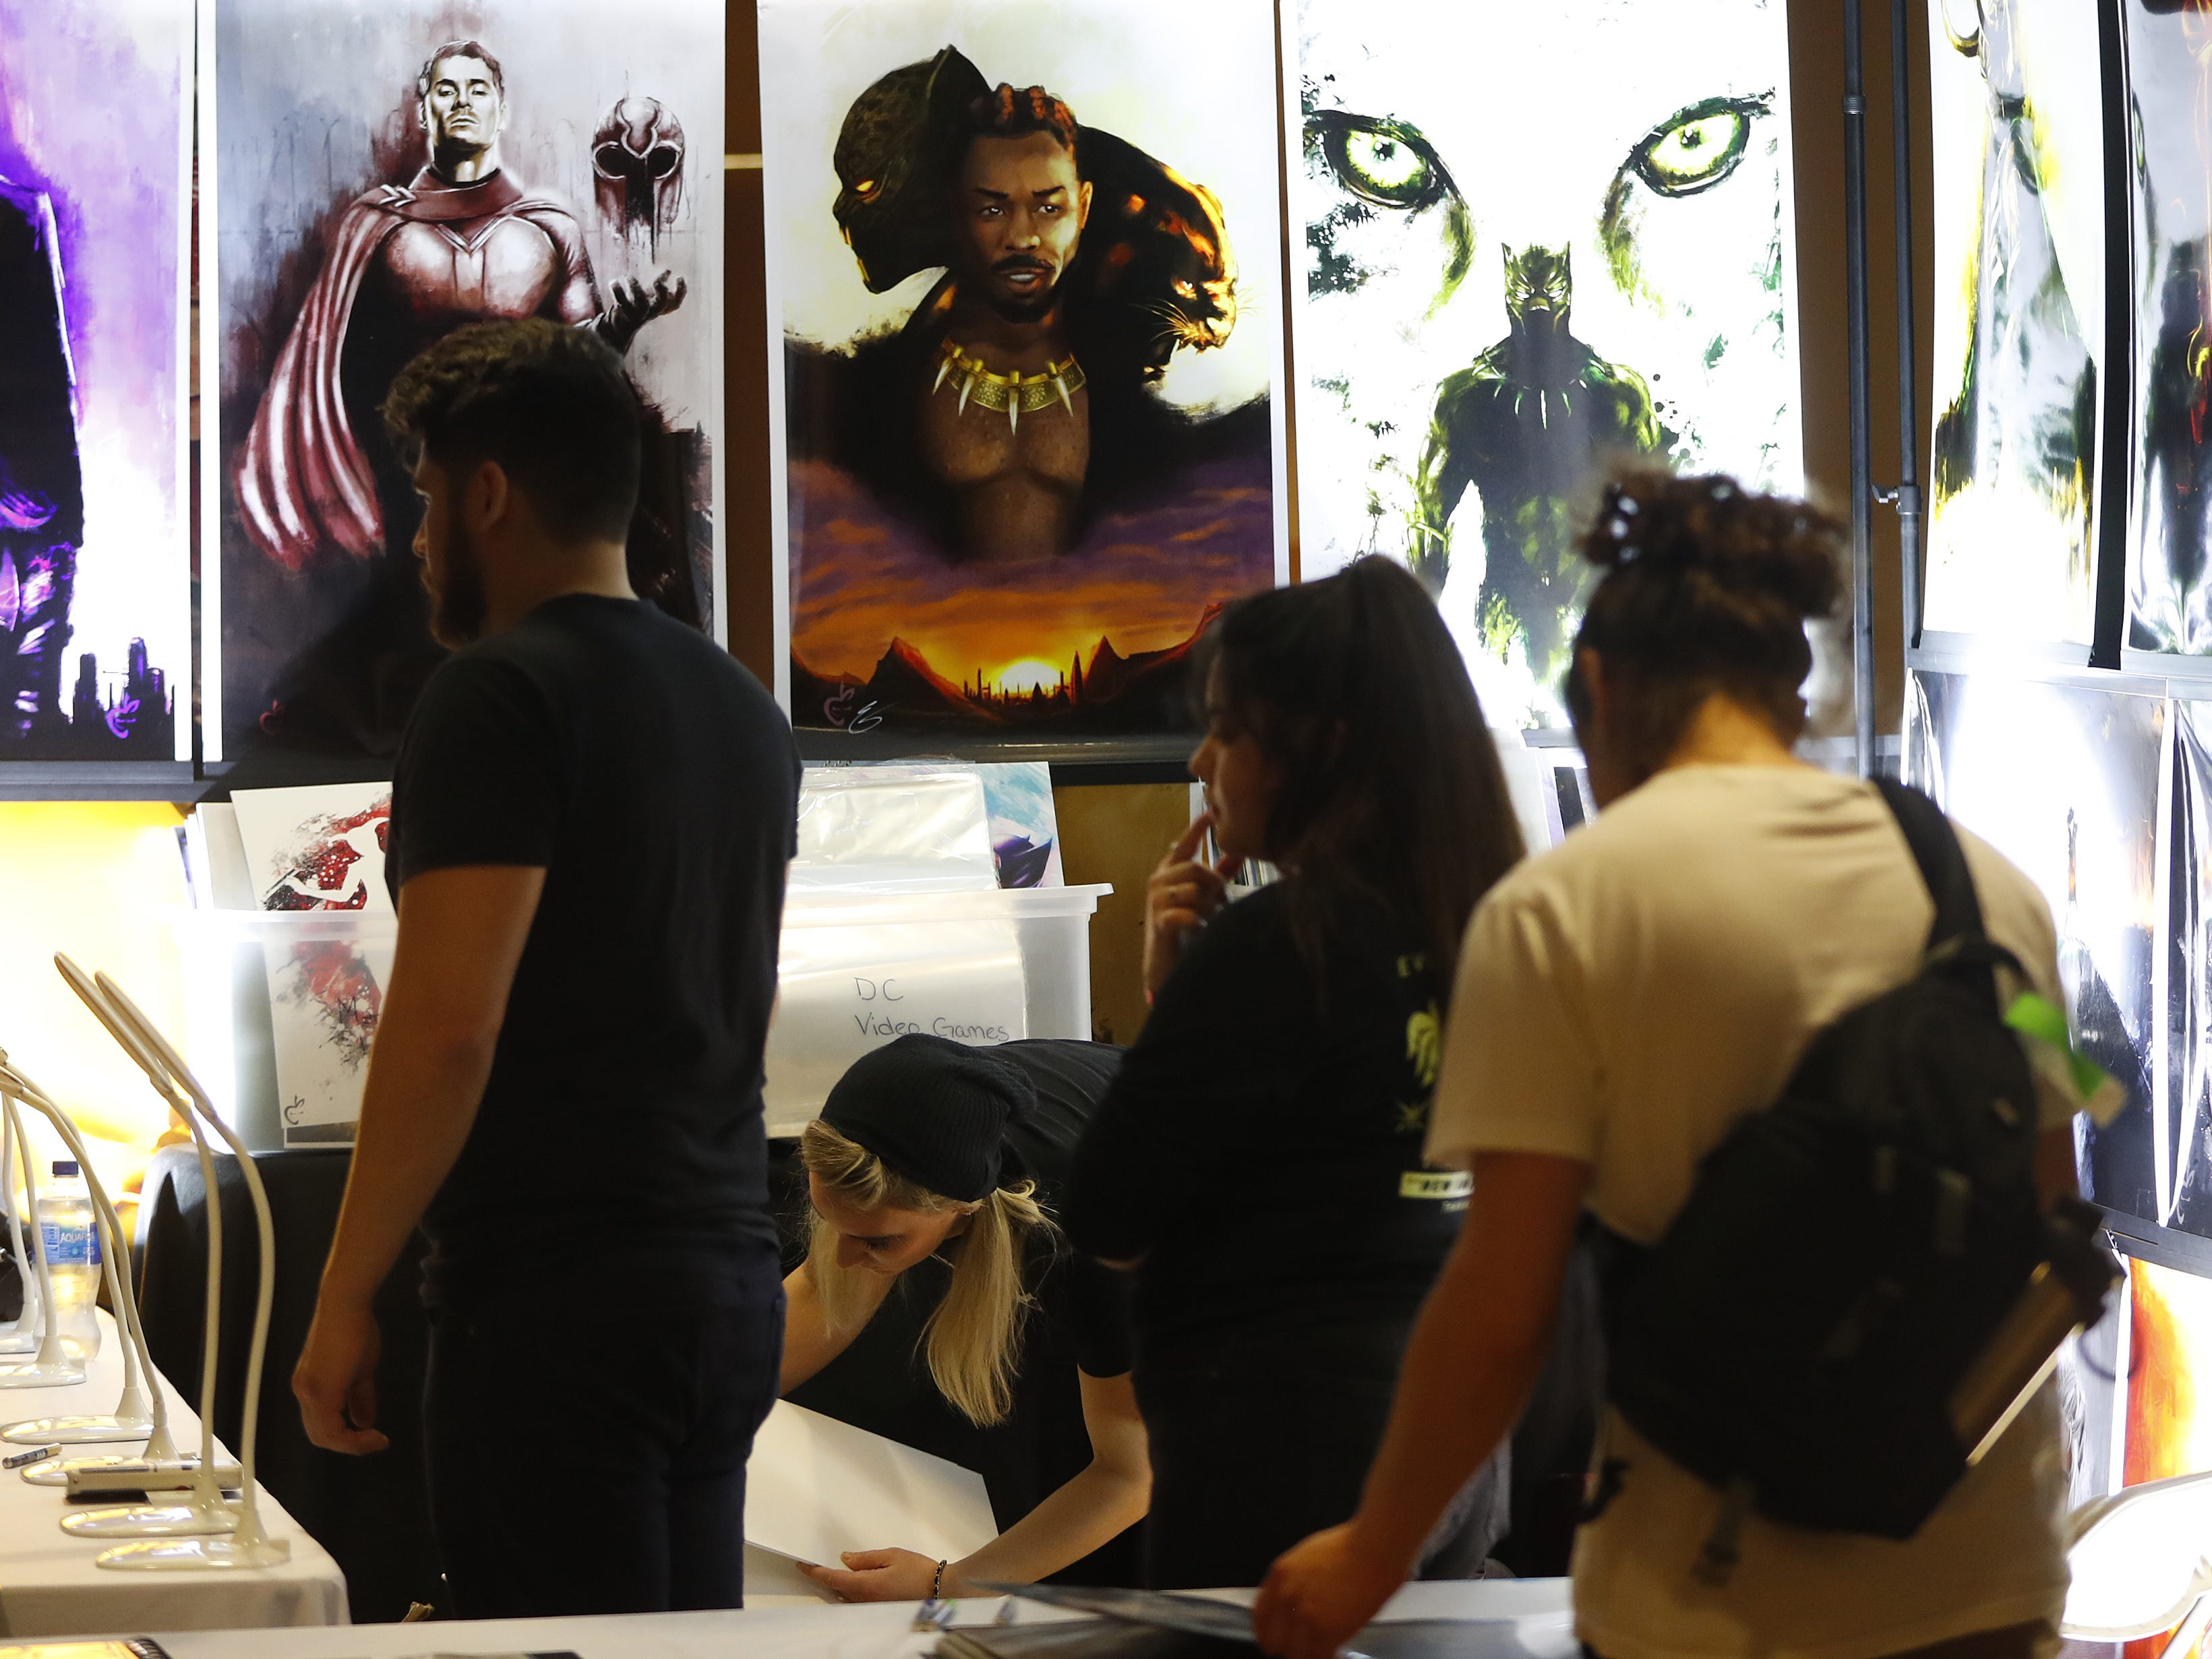 Art for sale draws onlookers during the opening day of Ace Comic Con 2019 at Gila River Arena in Glendale, Ariz. on Jan. 11, 2019.